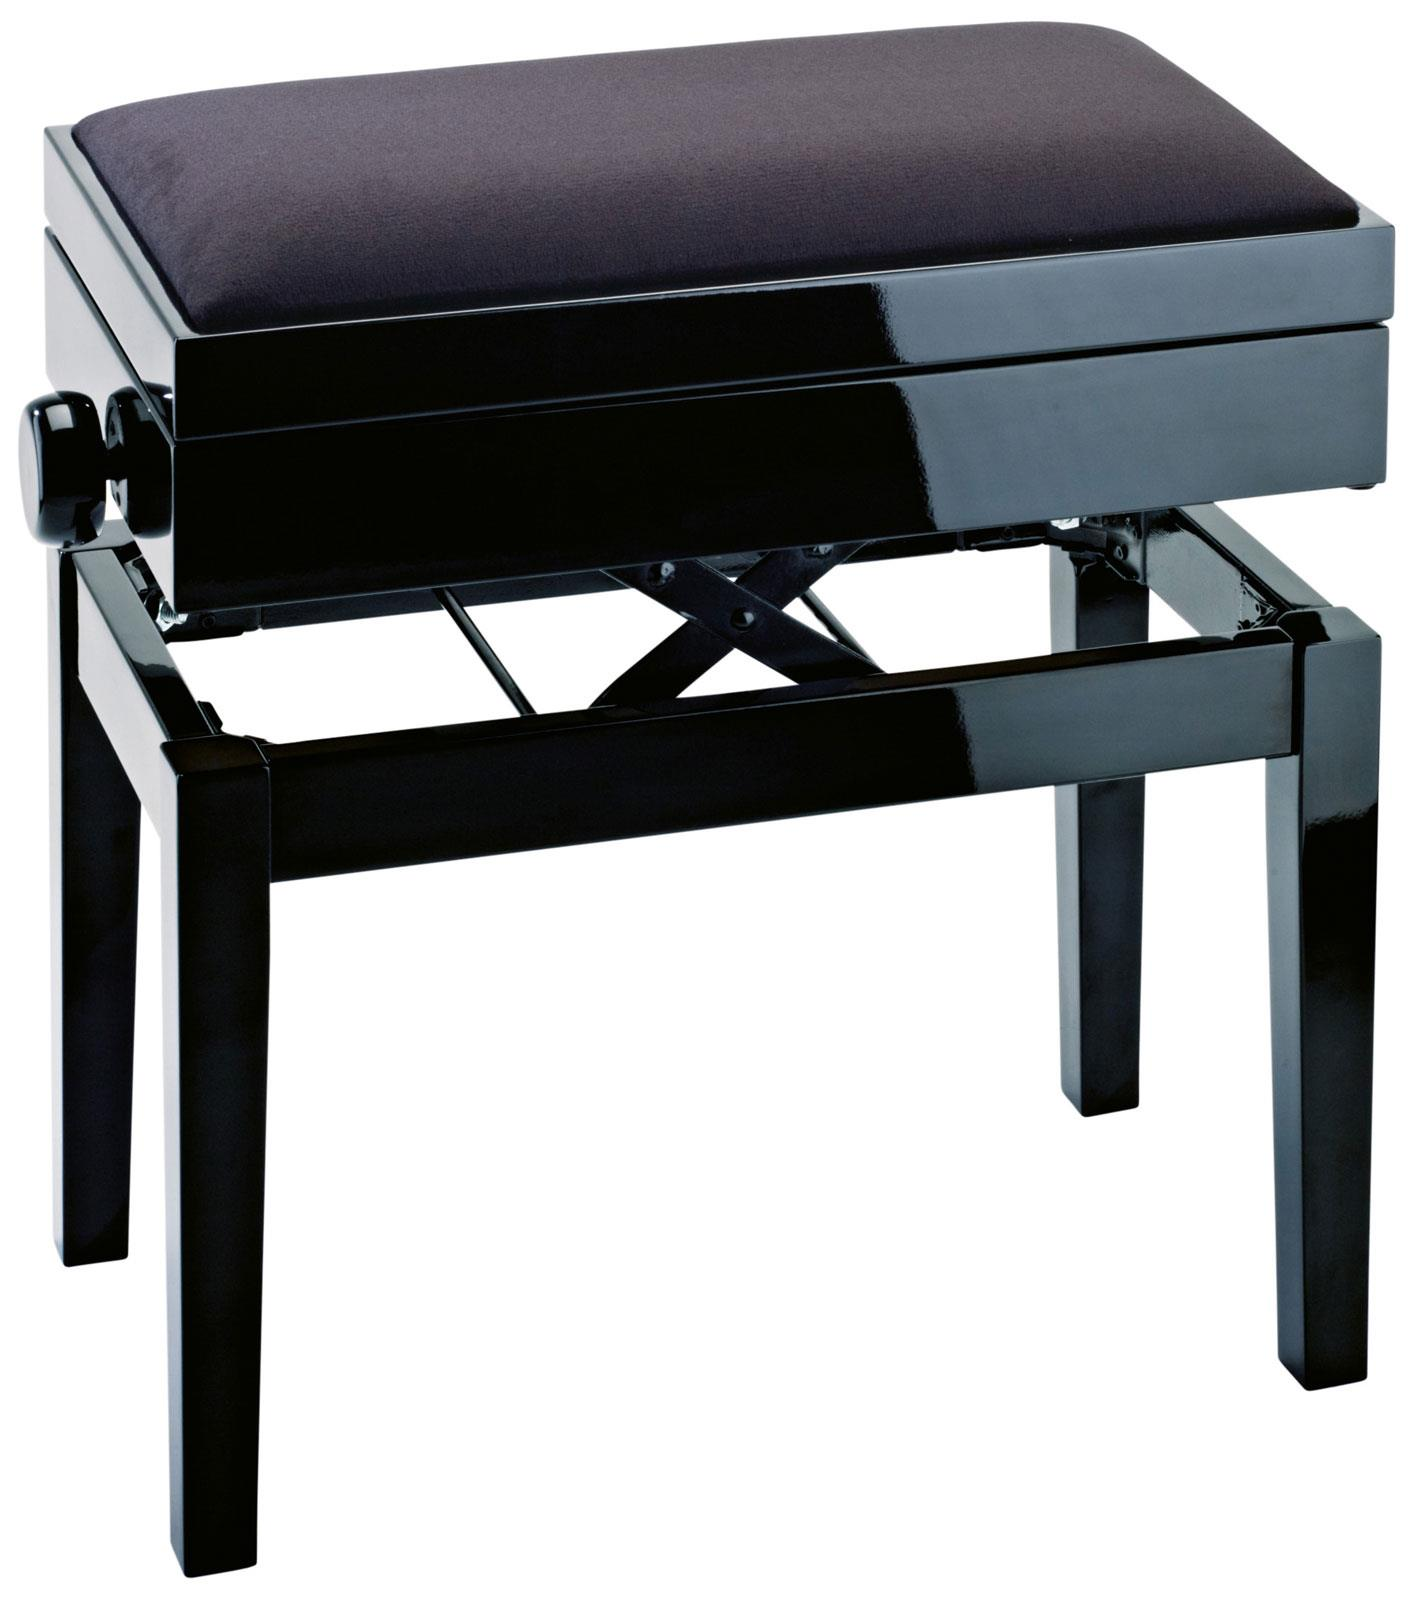 Konig Meyer 13950 Piano Bench Black Velvet With Storage Keymusic